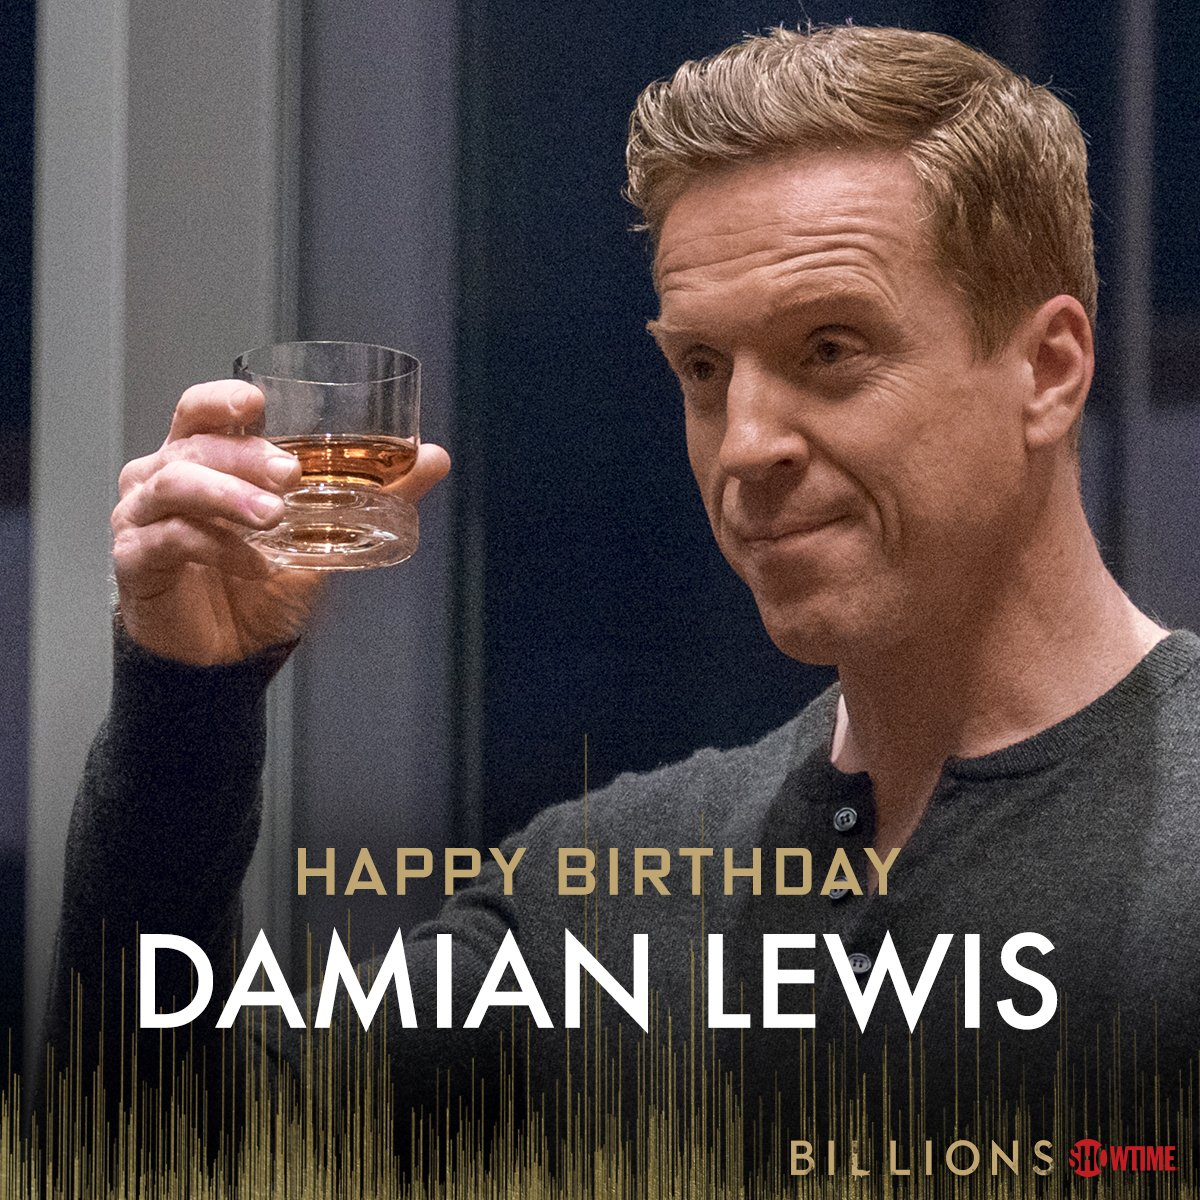 Billions on Showtime's photo on damián